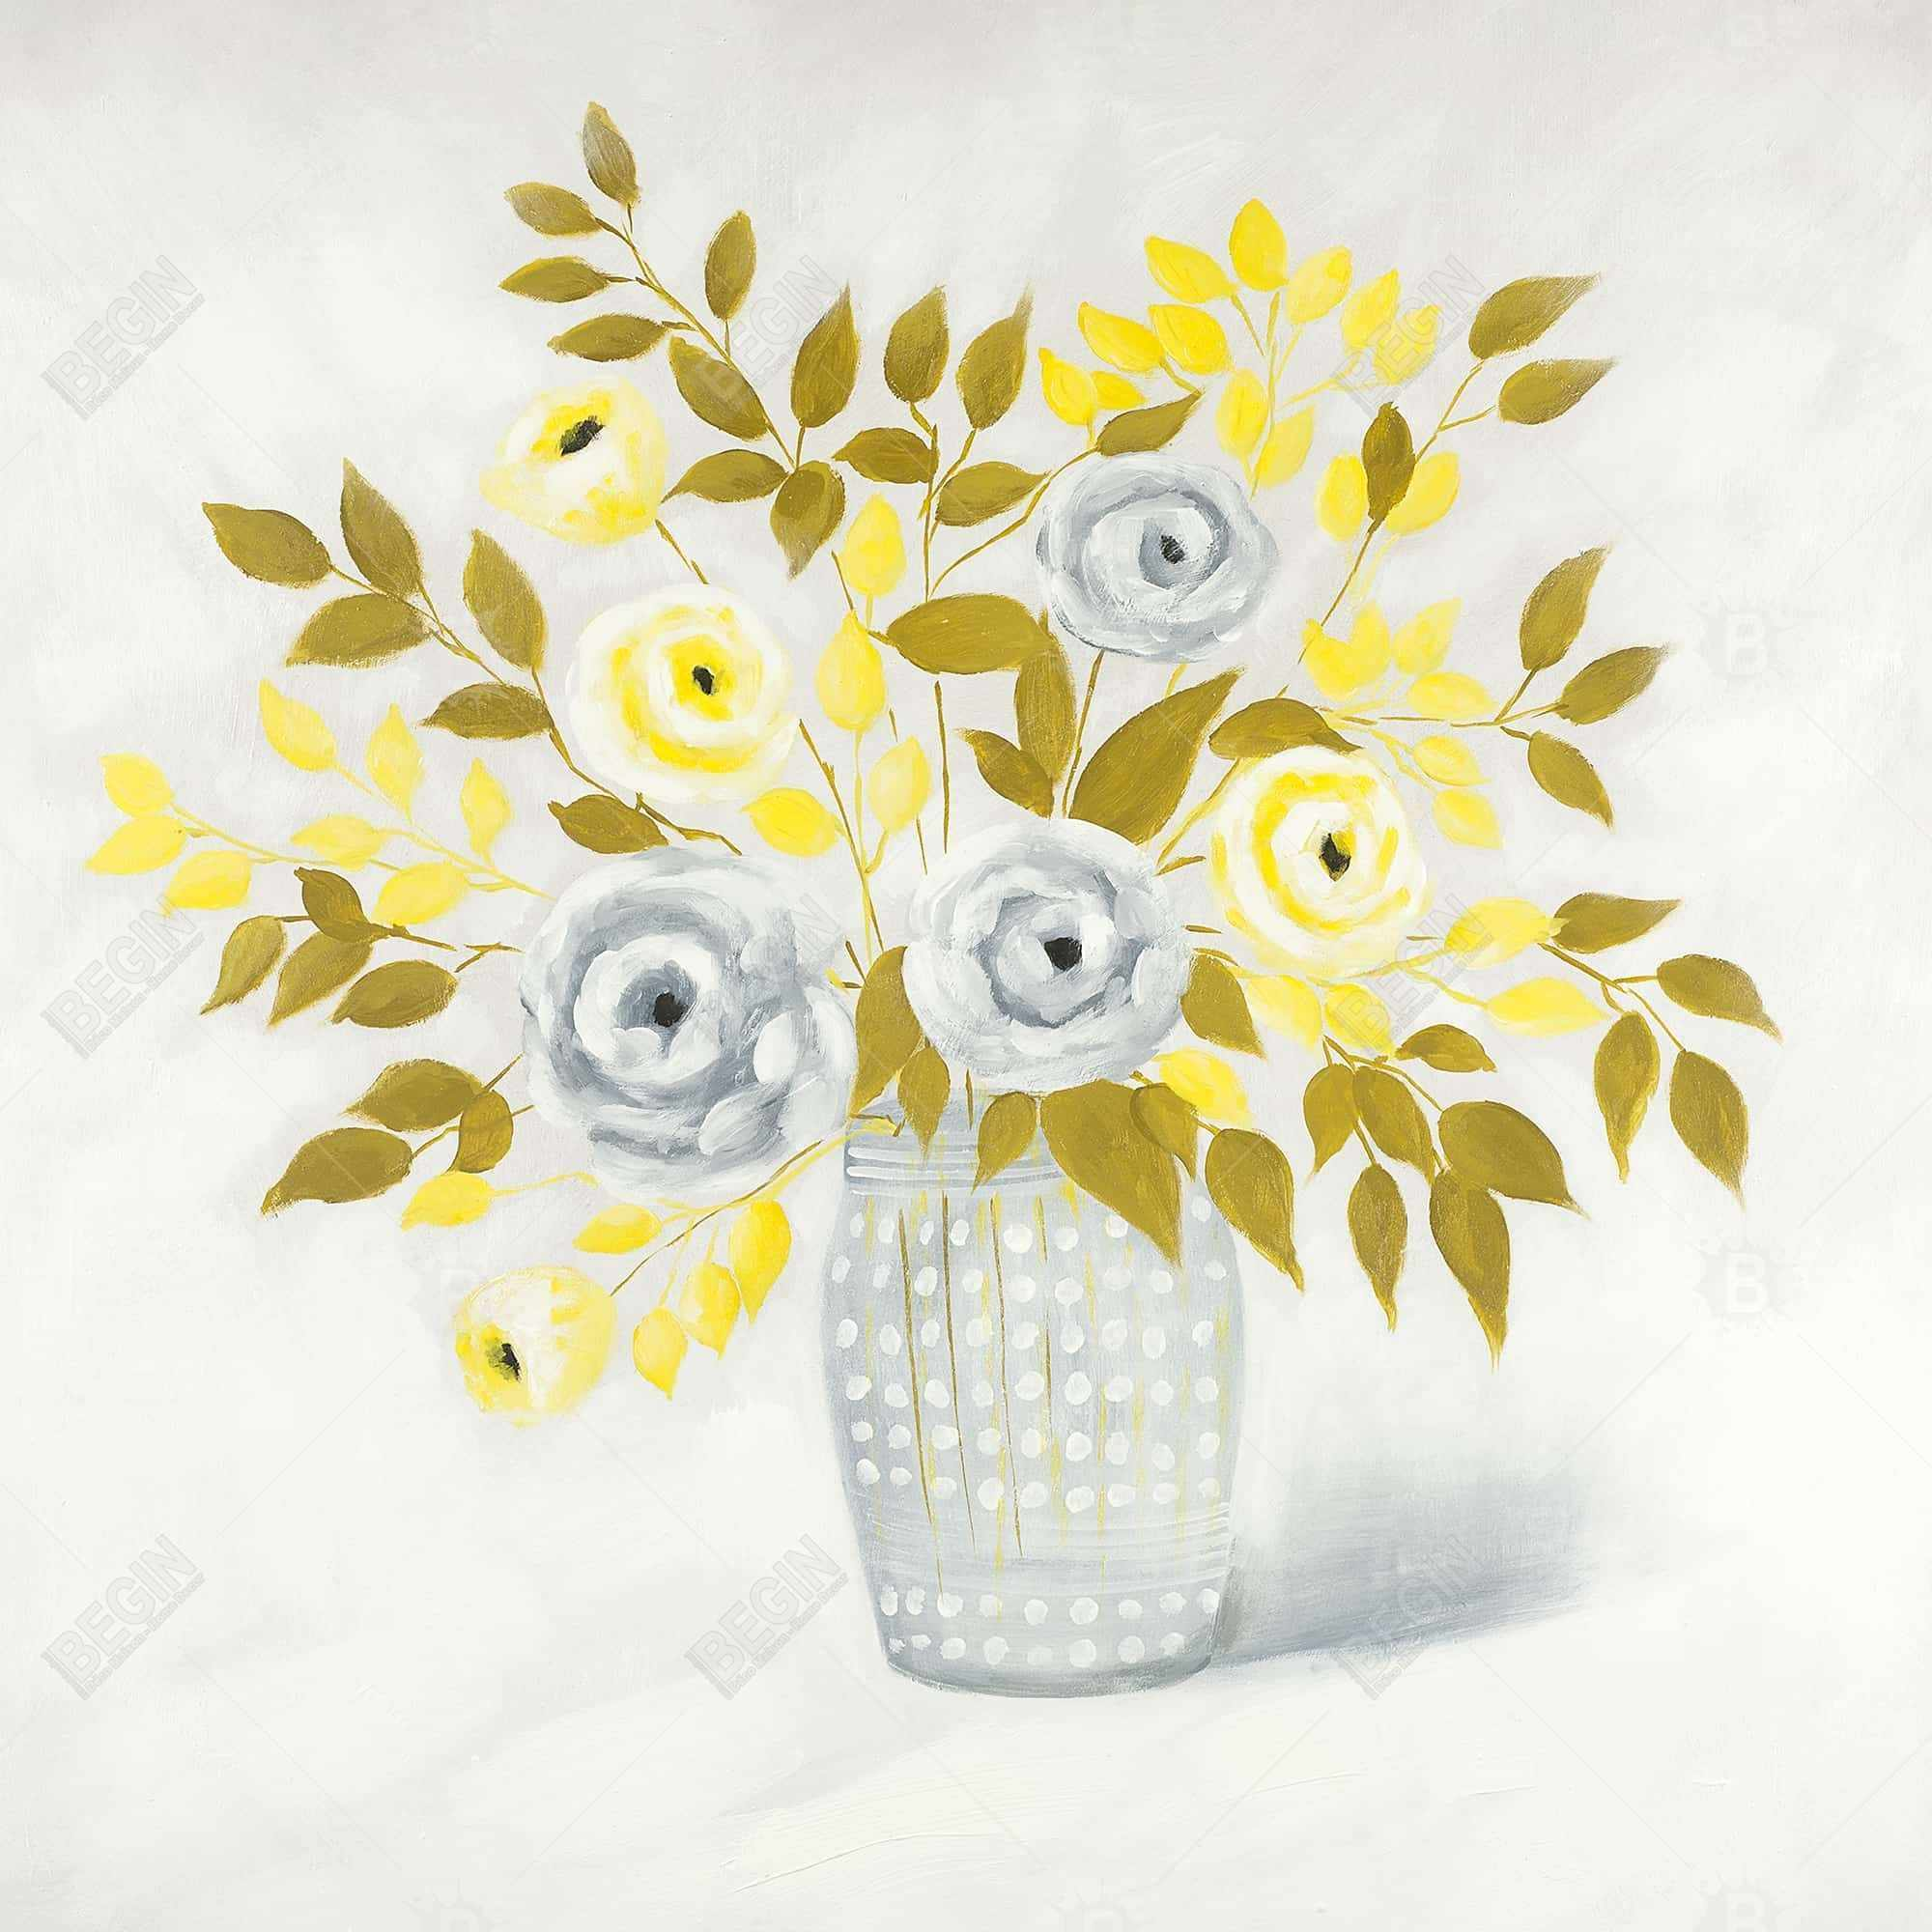 Blue and yellow flowers in a vase